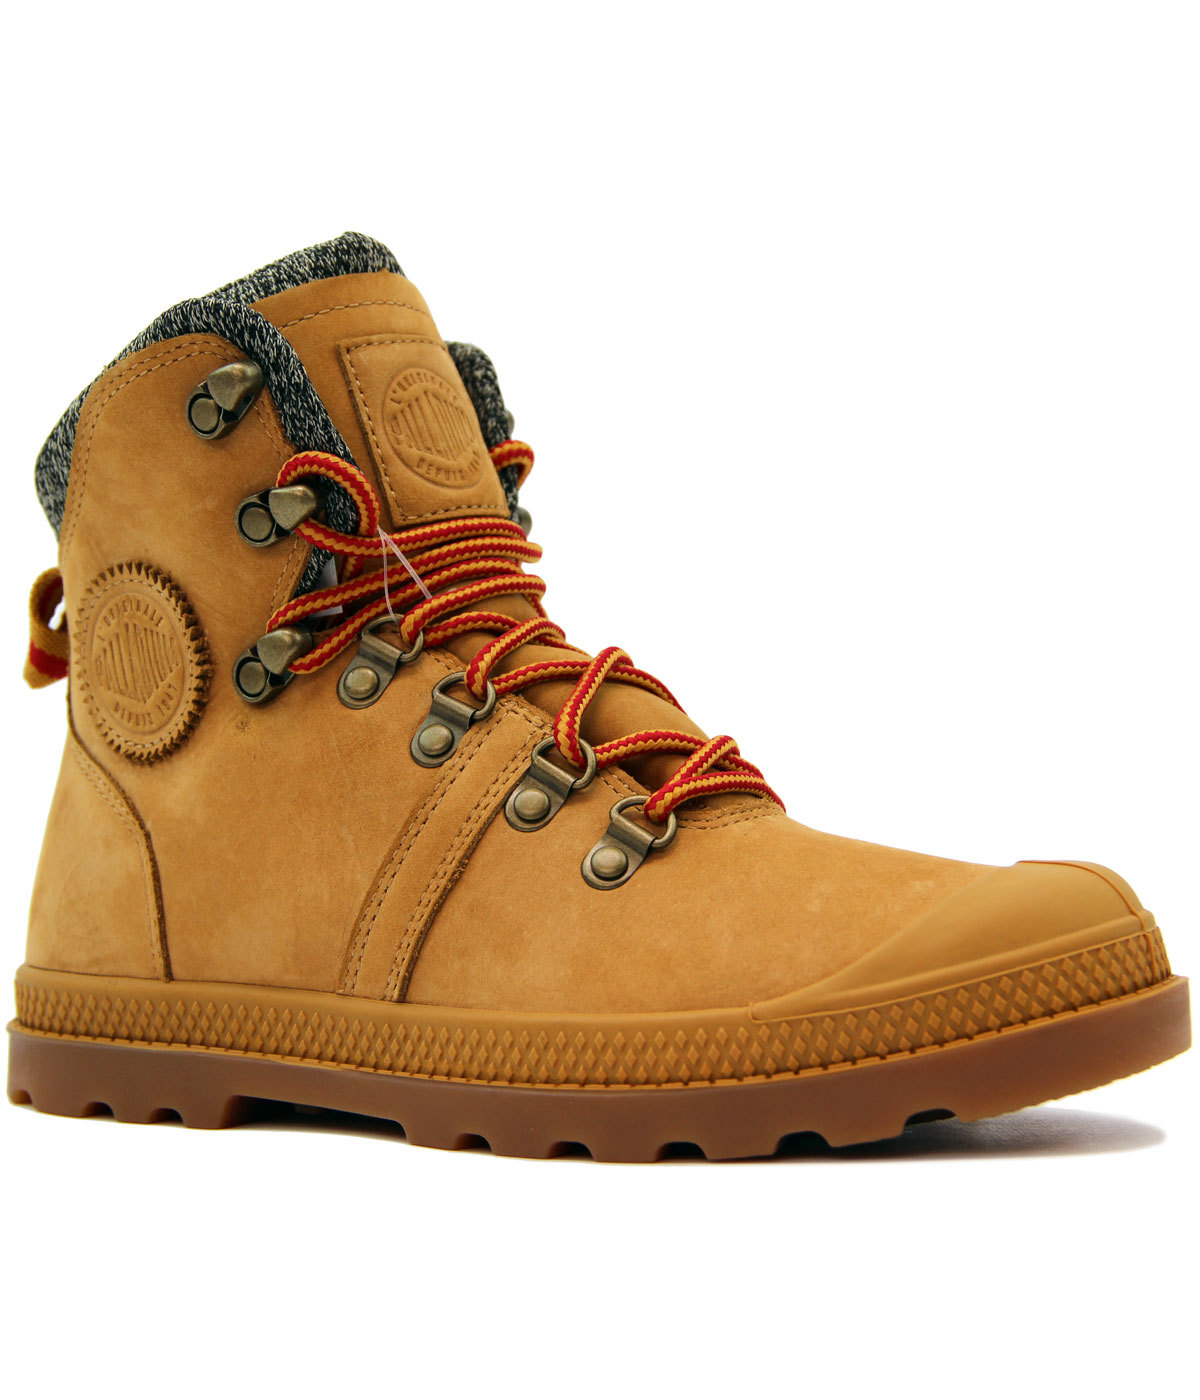 Pallabrouse Hikr LP PALLADIUM Retro Hiking Boots A